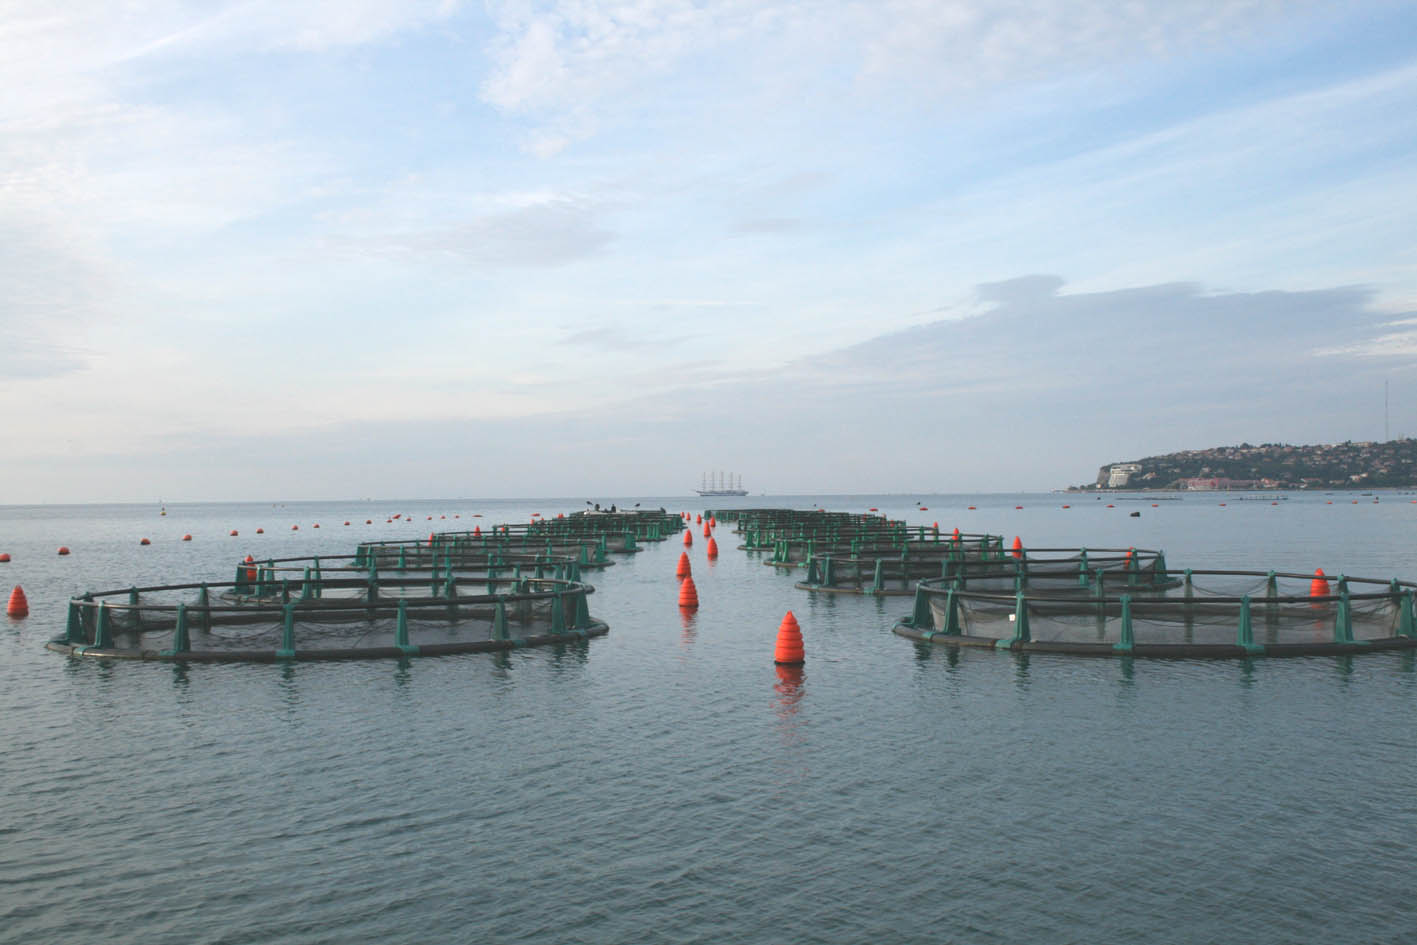 A modern seawater fish farm off the coast of Slovenia.